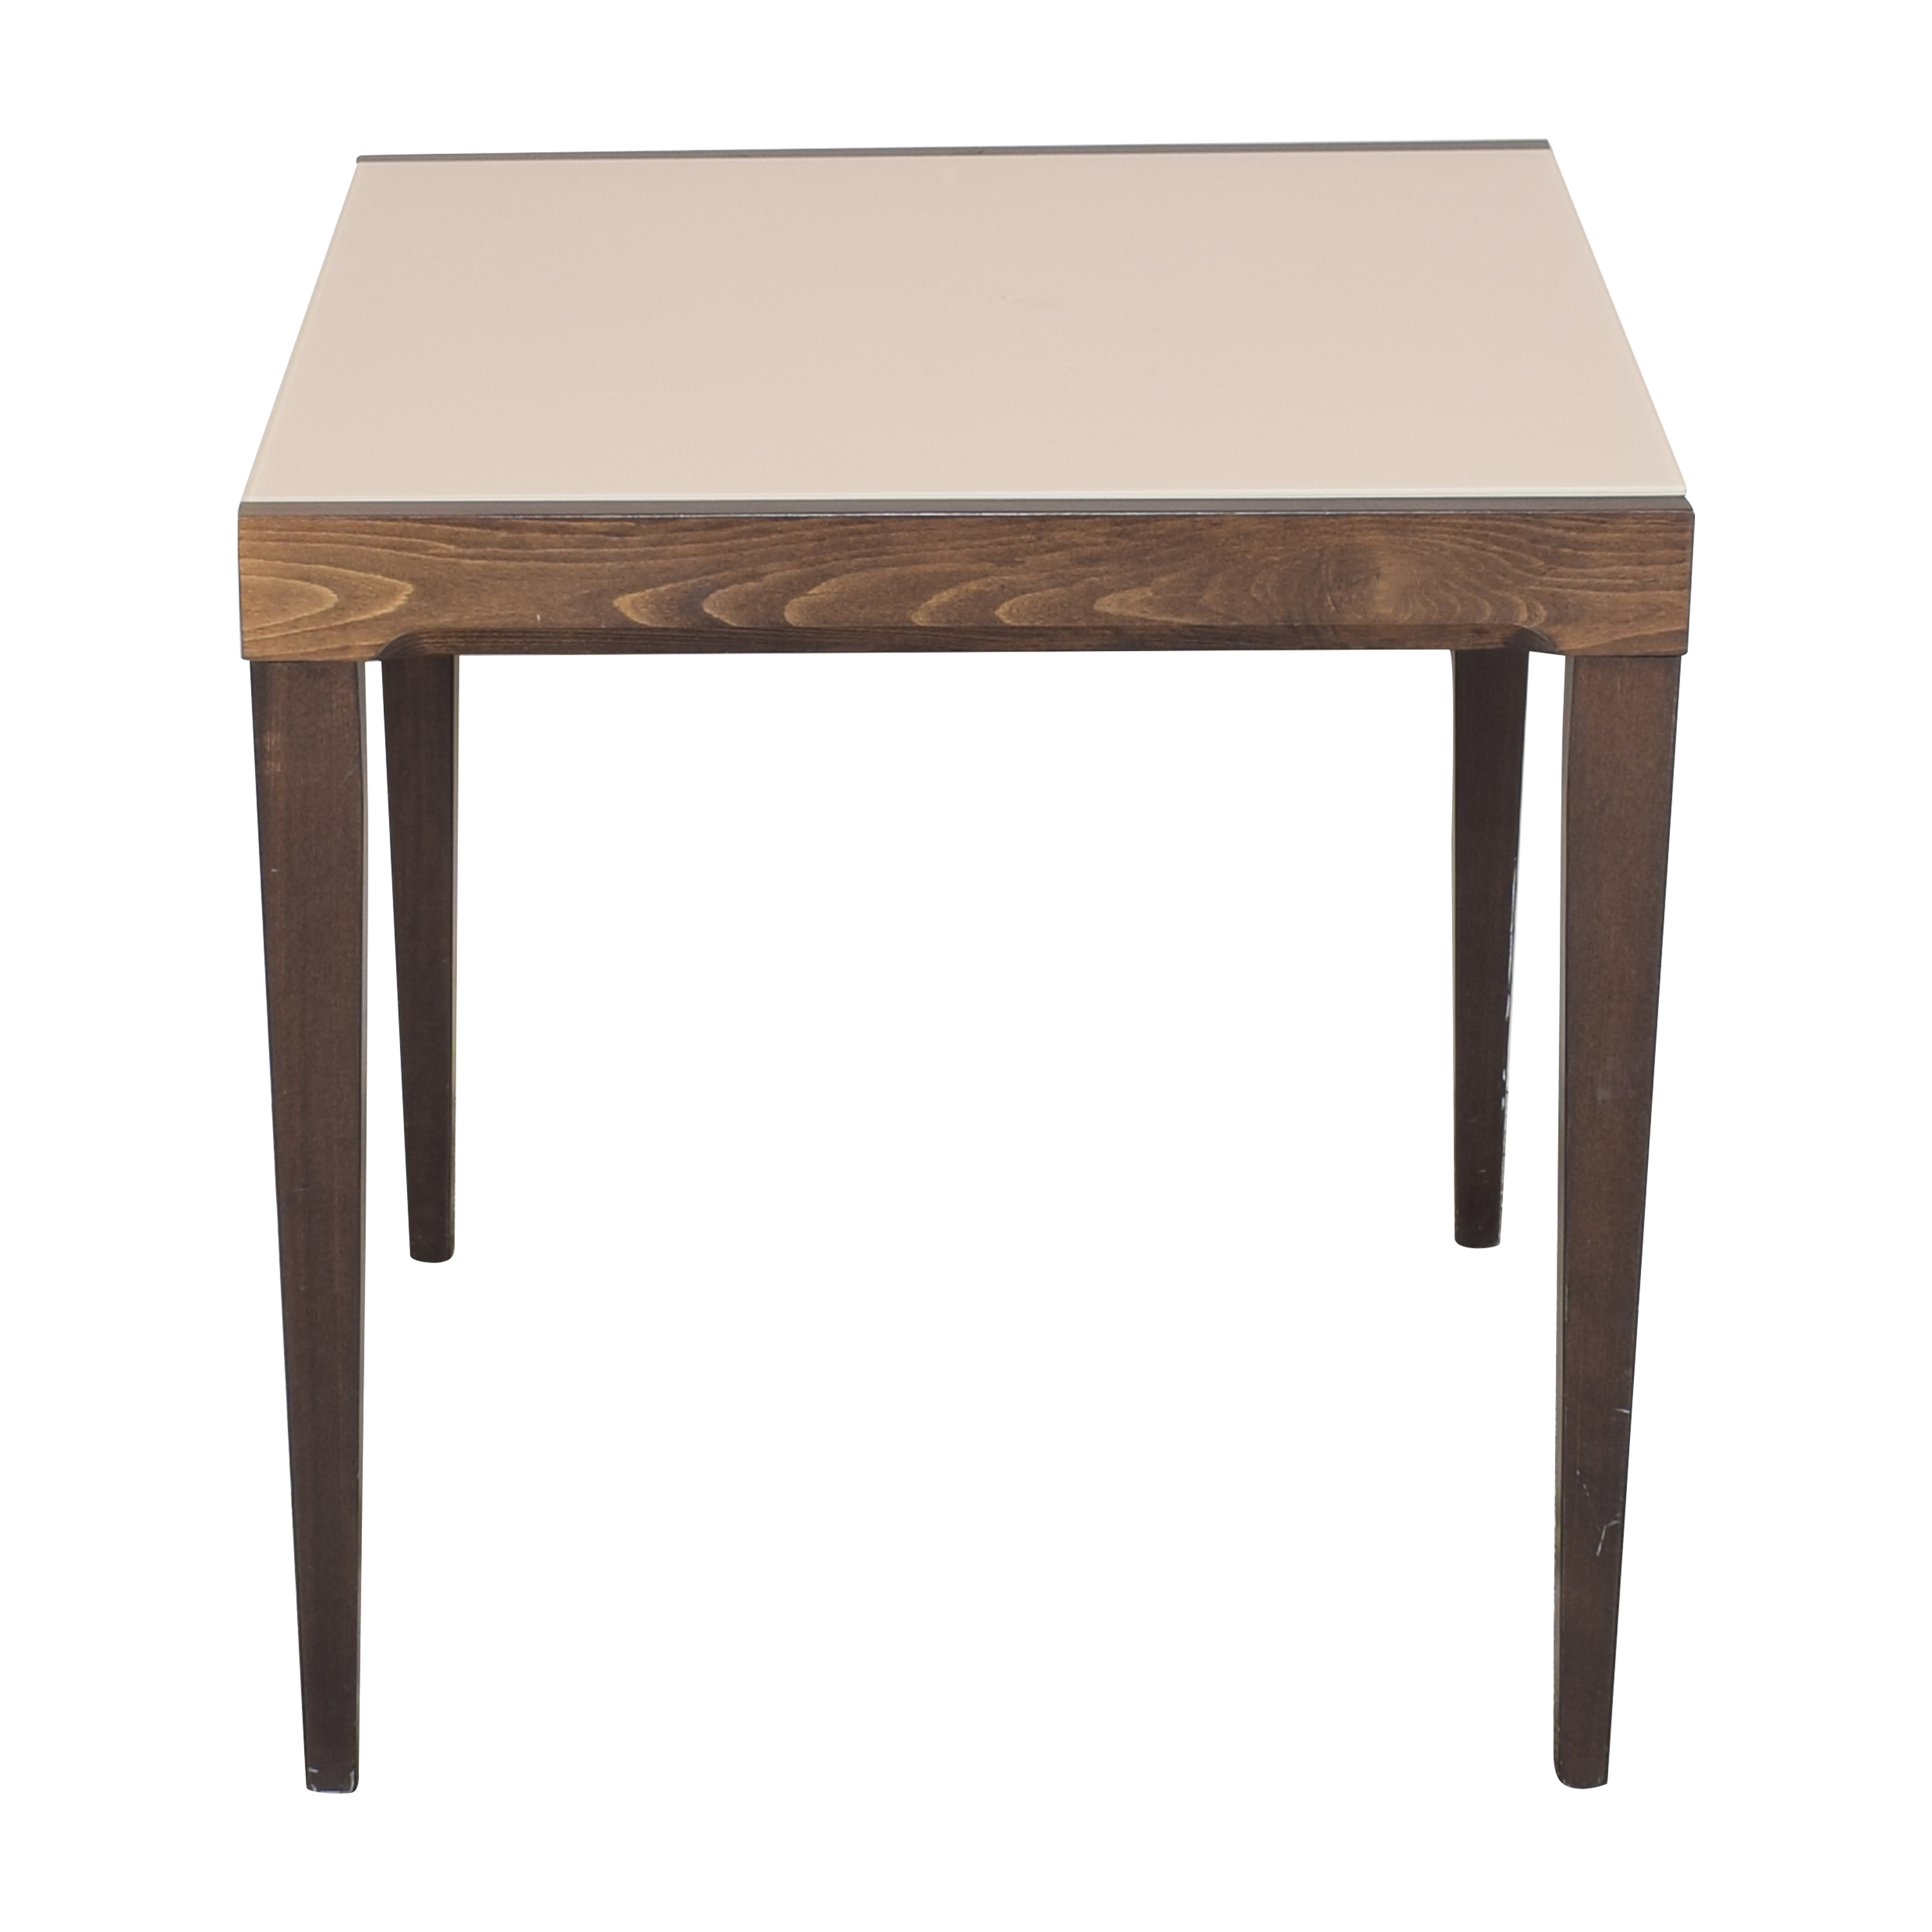 Macy's Macy's Square Extendable Dining Table second hand